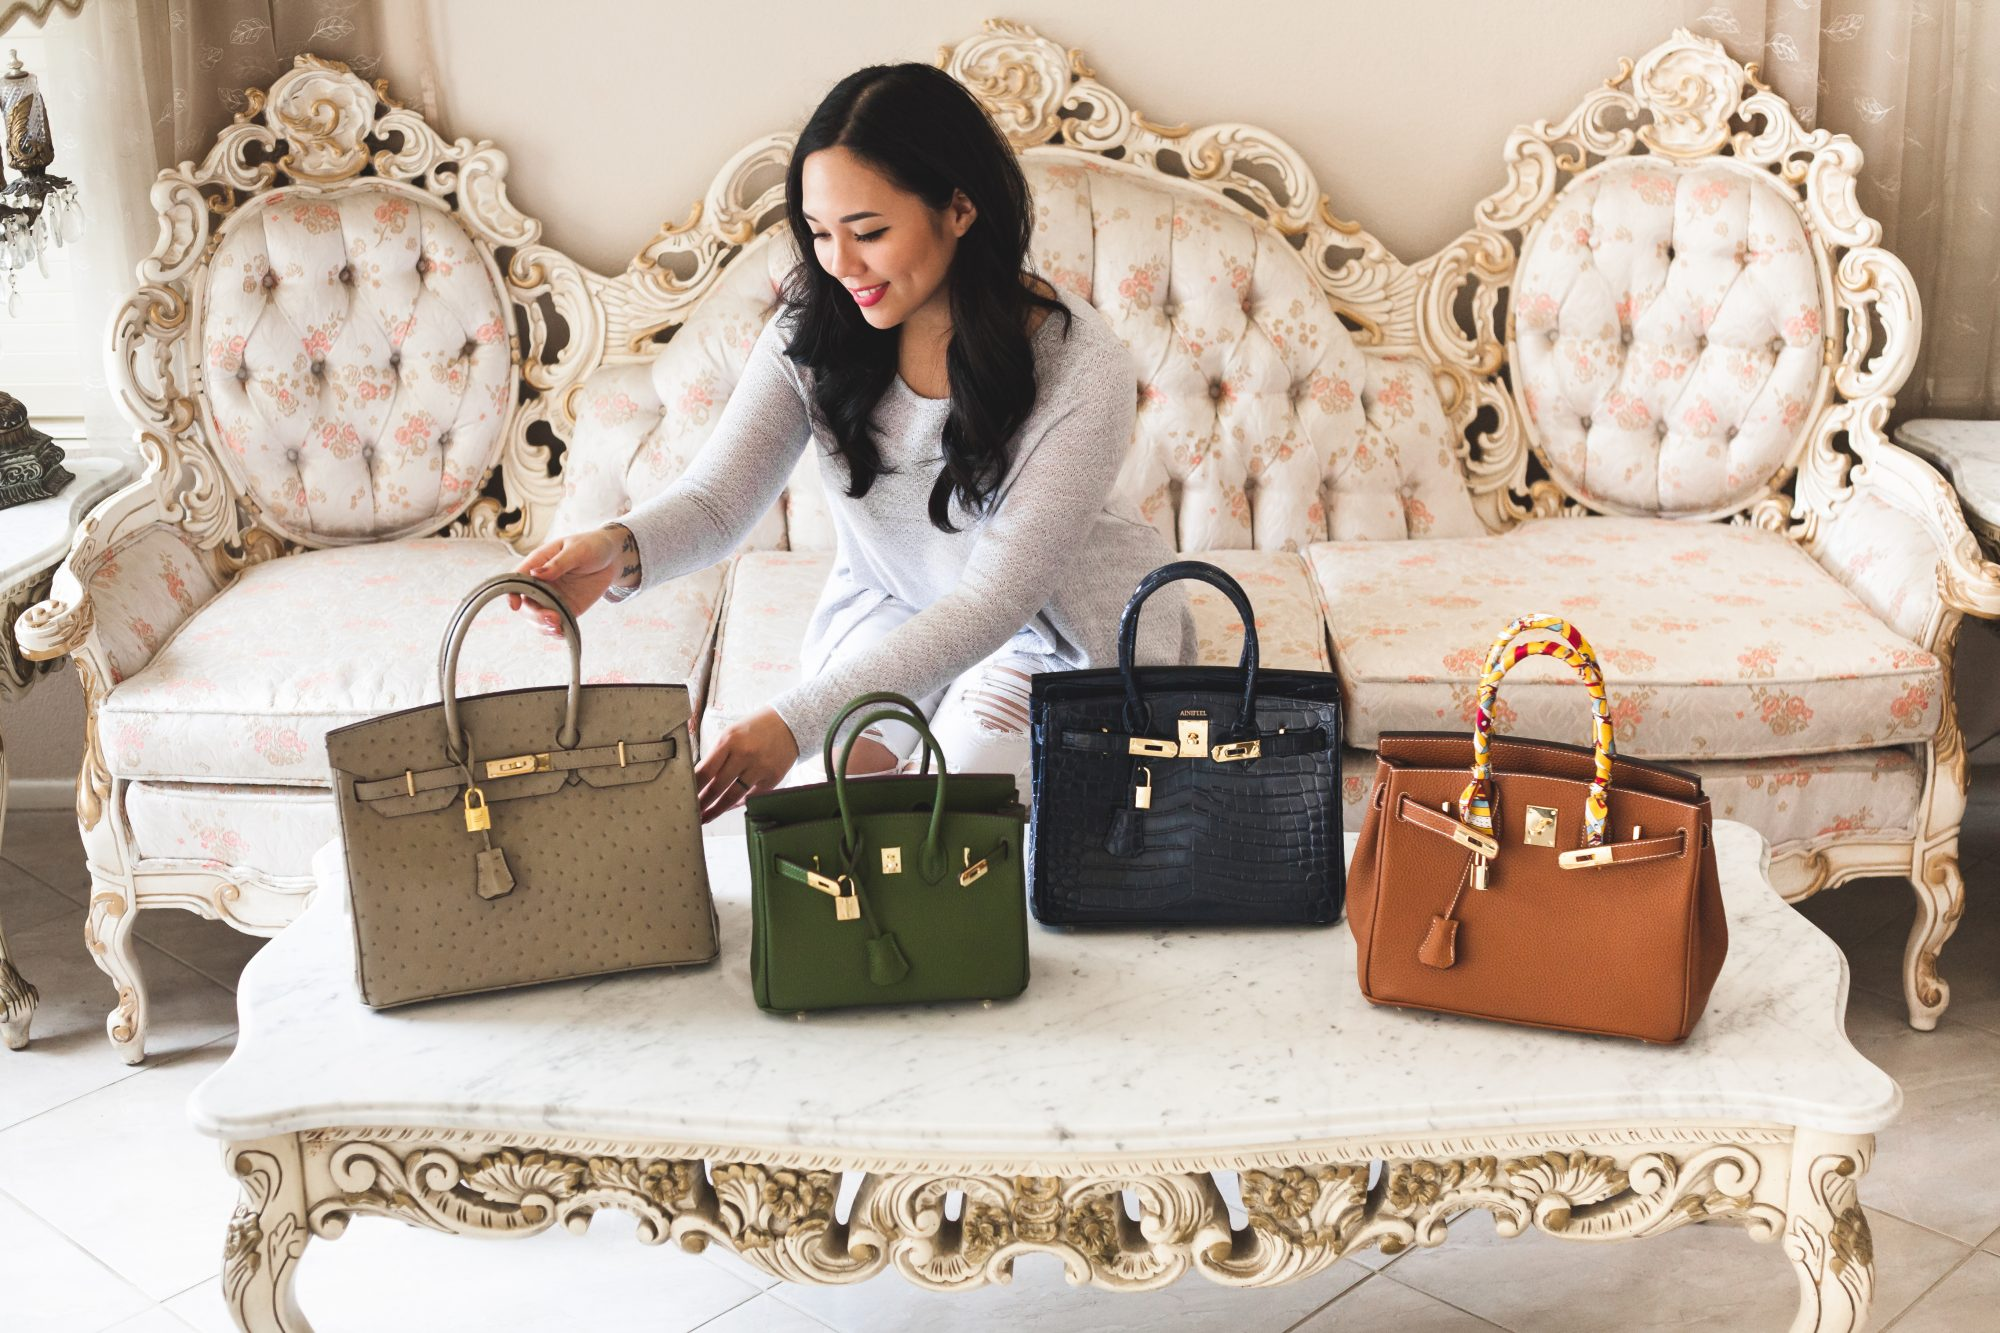 Fan of the expensive Hermés Birkin? Here are 4 gorgeous and high-quality designer dupes from Ainifeel, from Togo leather, to crocodile, ostrich and more. These quality handbags are between only $100 - $200! - www.theballeronabudget.com